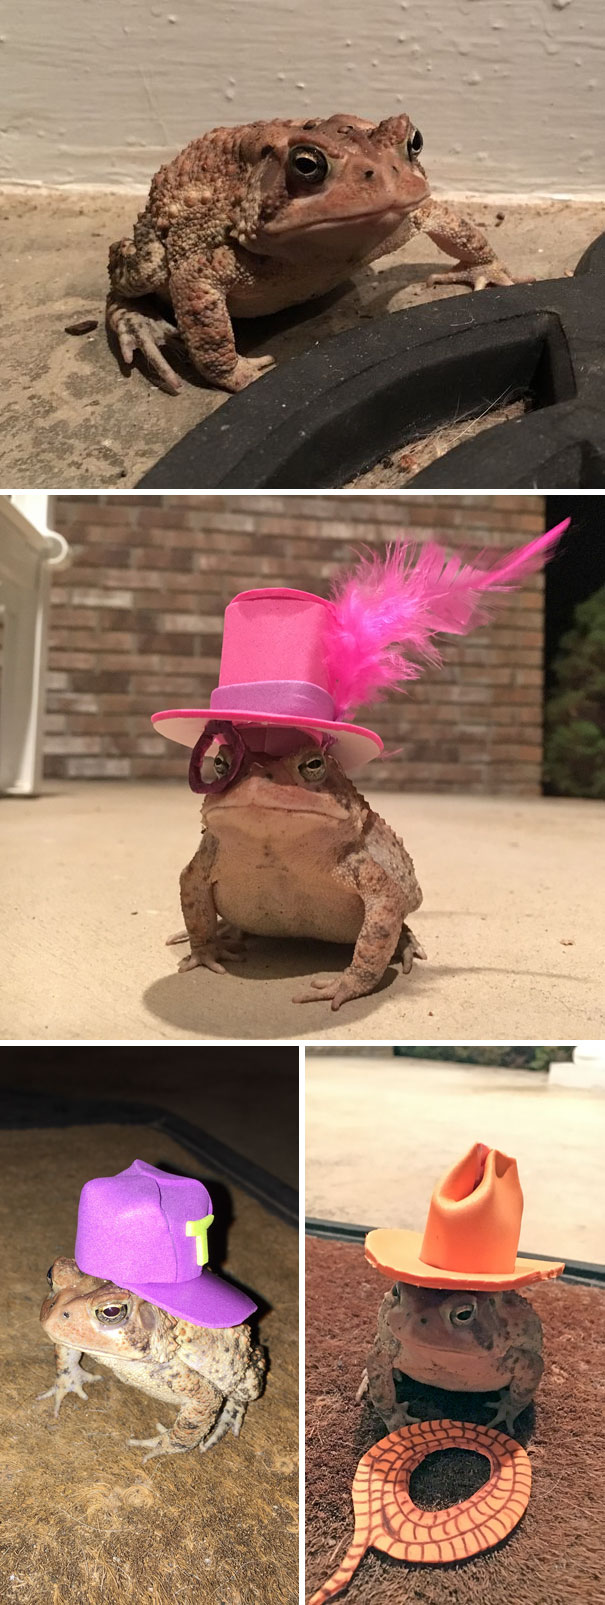 This Toad Kept Coming To My Porch, So I Started Making Him Tiny Hats